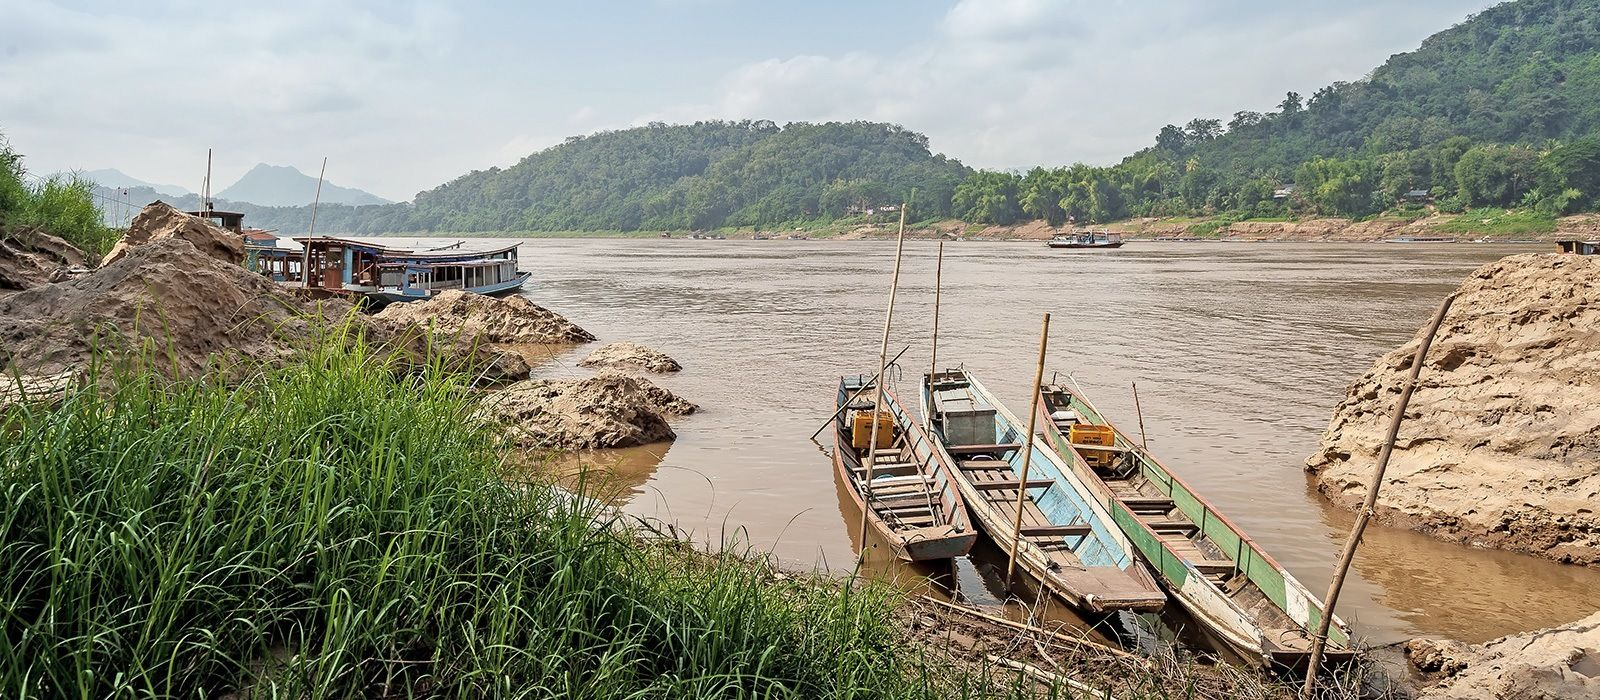 Live Laos: From Monks to Mekong Tour Trip 8